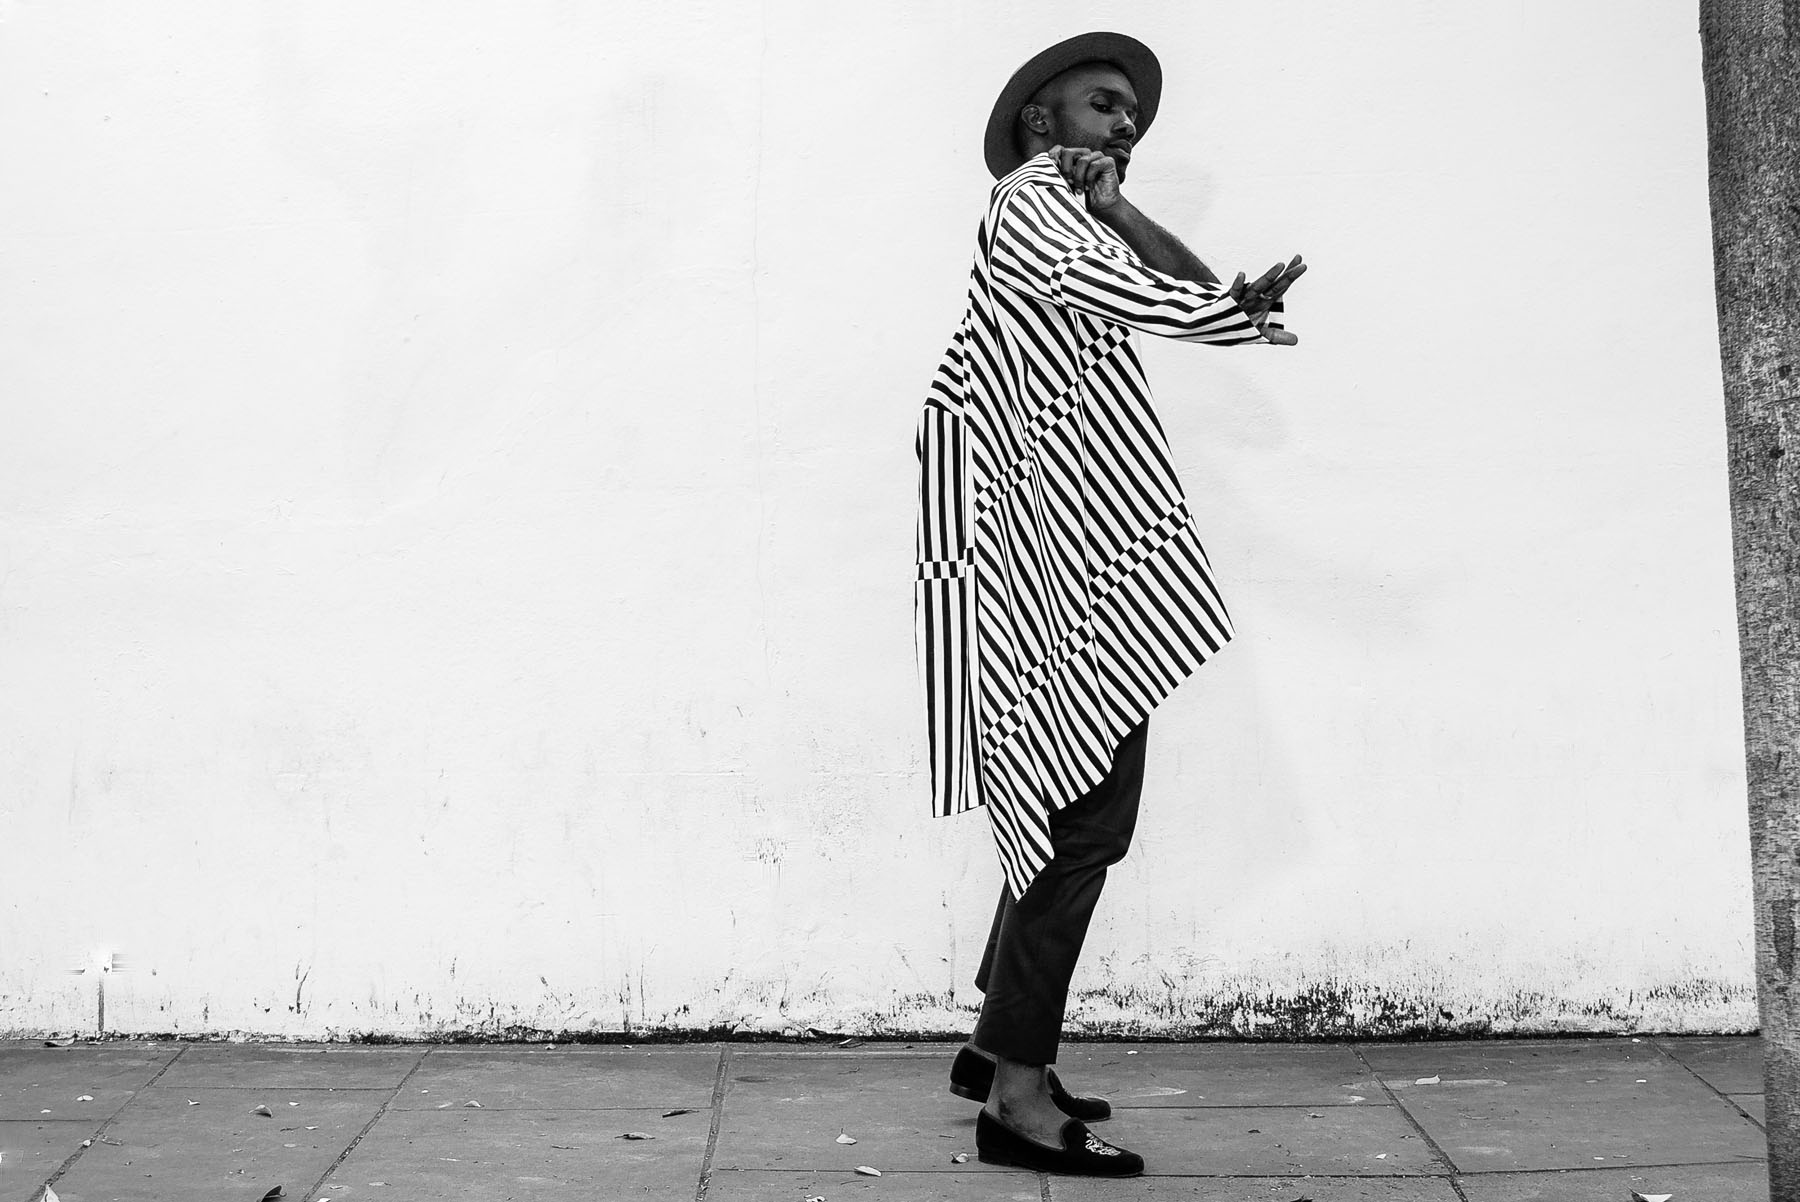 Geoff K. Cooper (Street Style Look) photographed by Michael Mapp